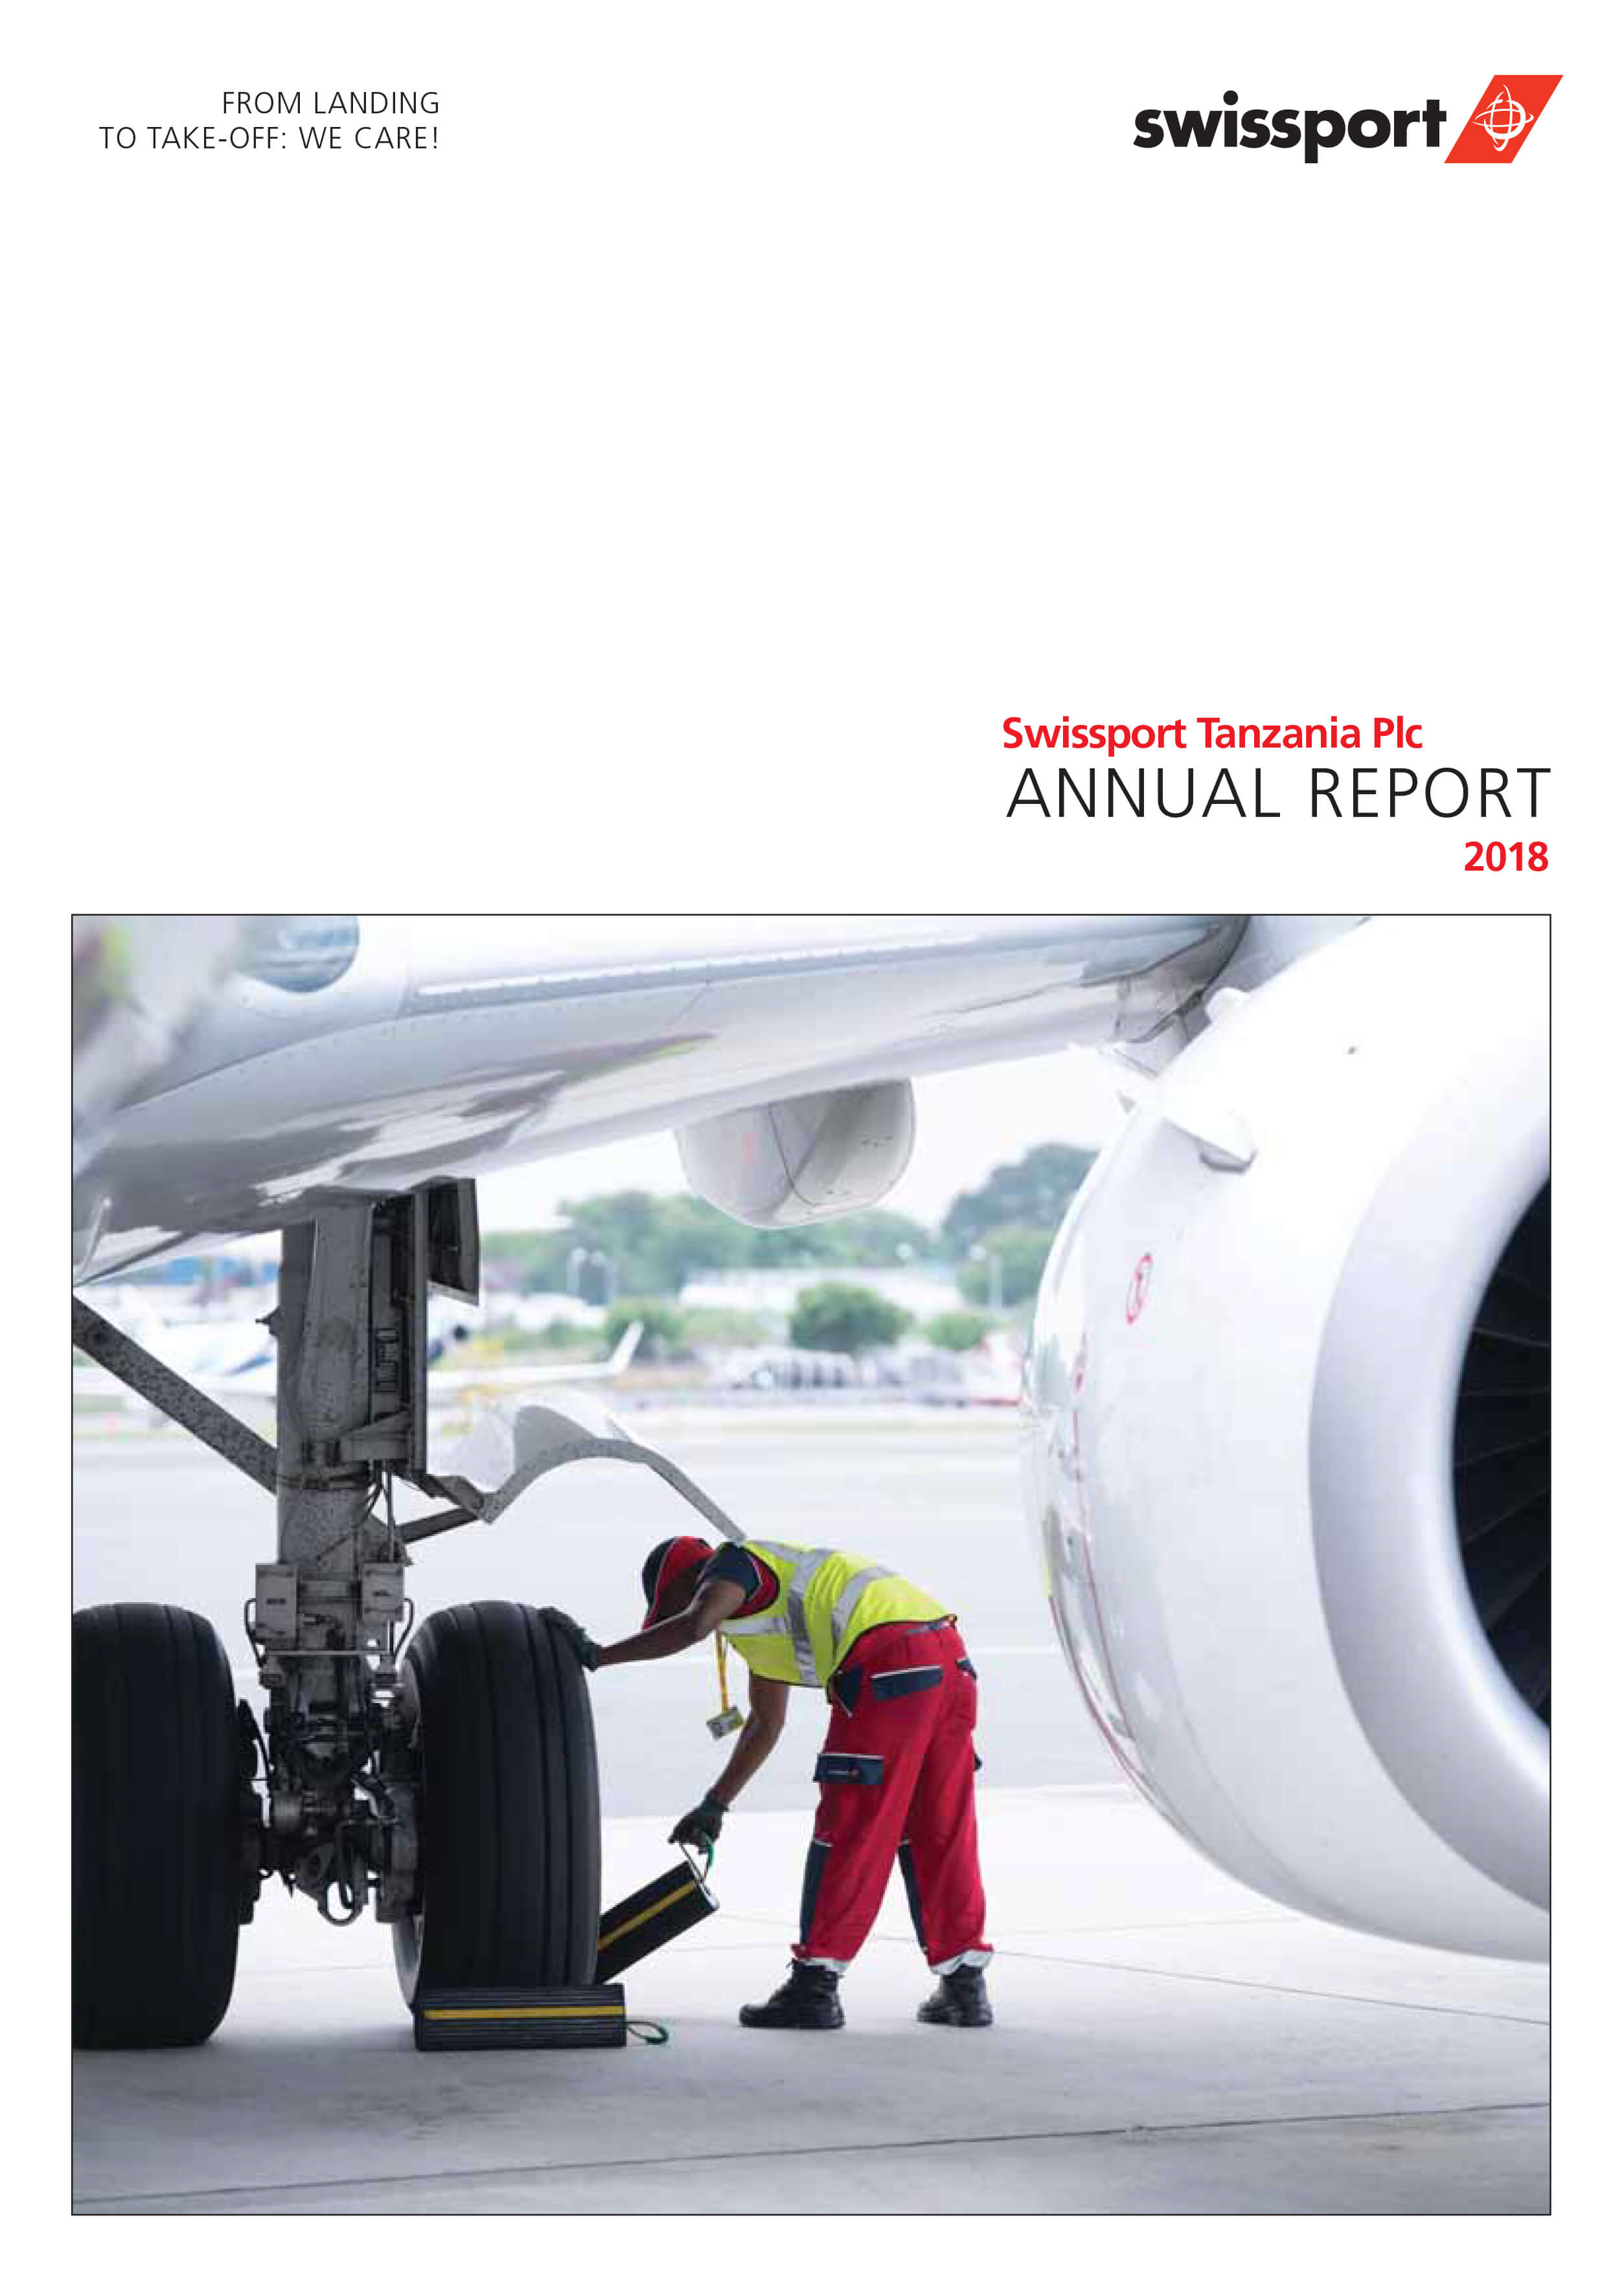 cover design of annual report of Swispport Tanzania 2018 by William Janssens